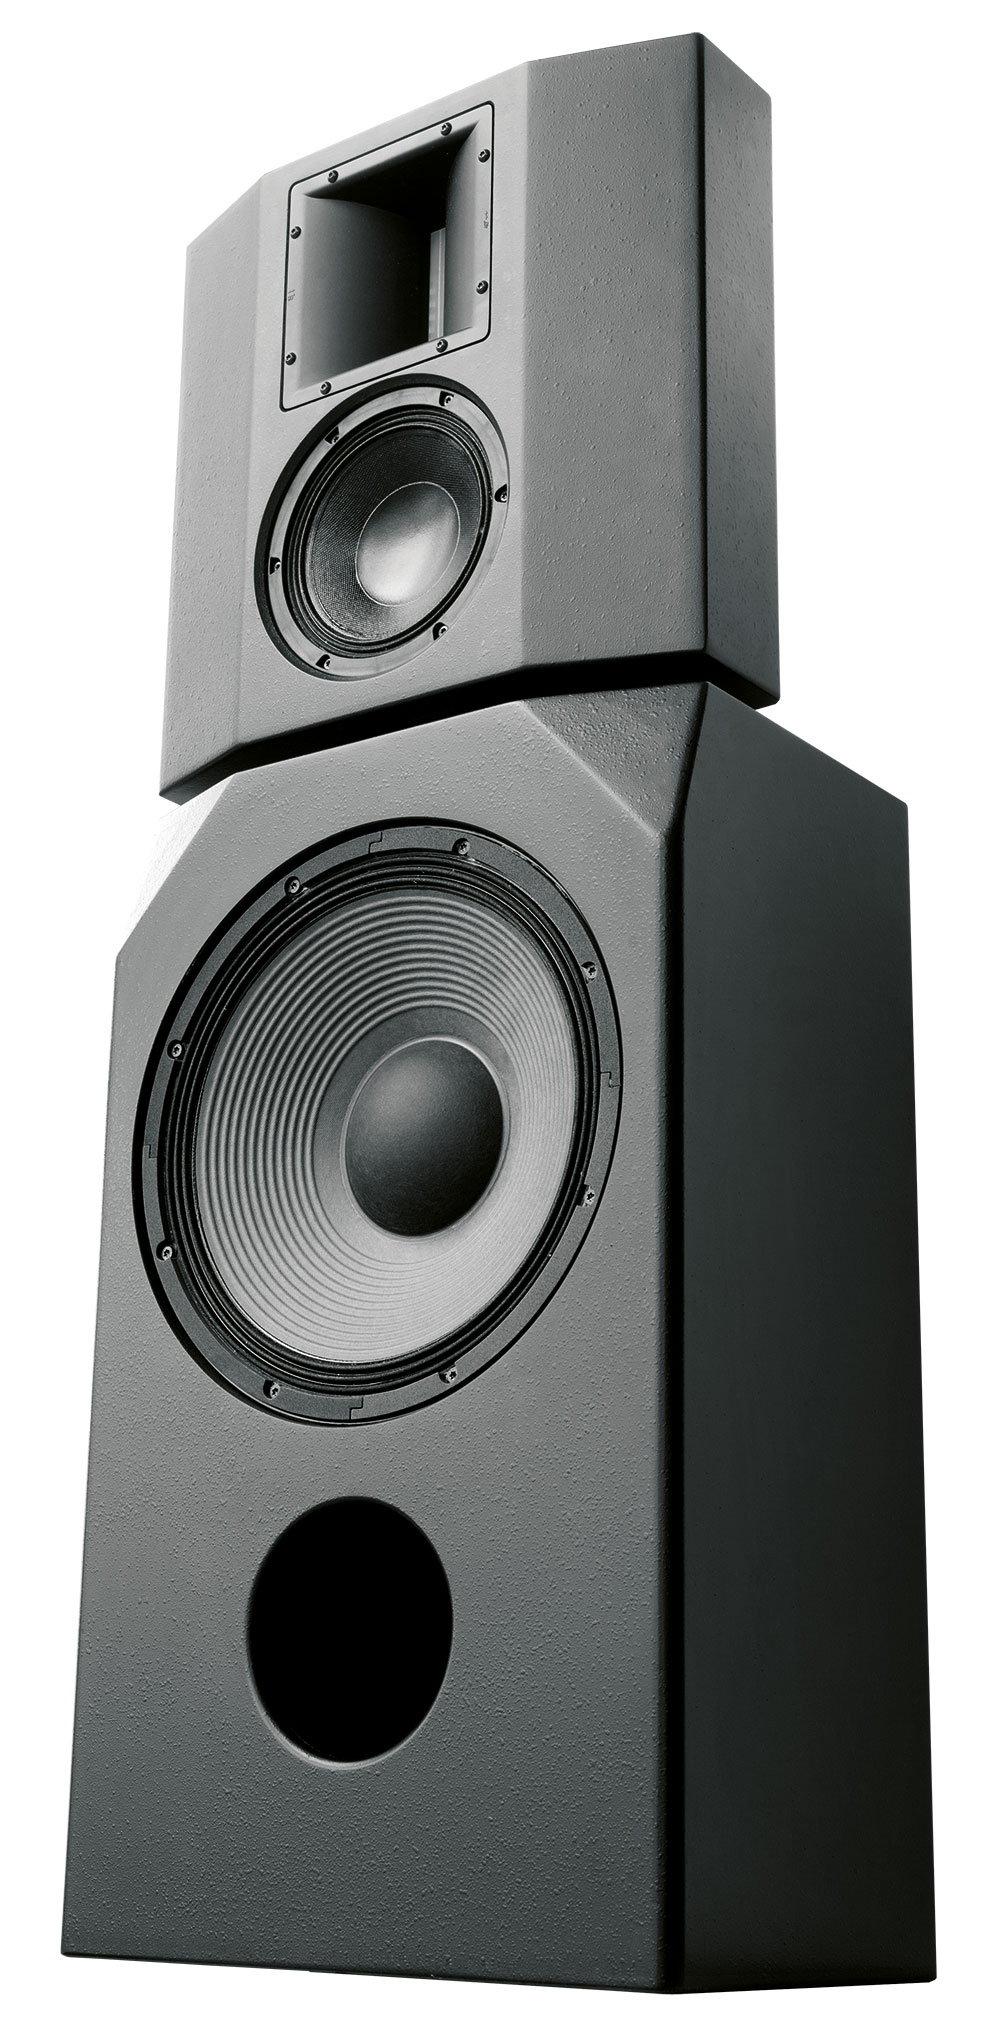 Beheerder Author At Alcons Audio Subwoofers Will Consistent Power To Both Maximizing Your Eight Years After The Introduction Of Original Launches Mkii Version Its Successful Crms Cinema Reference Monitor System